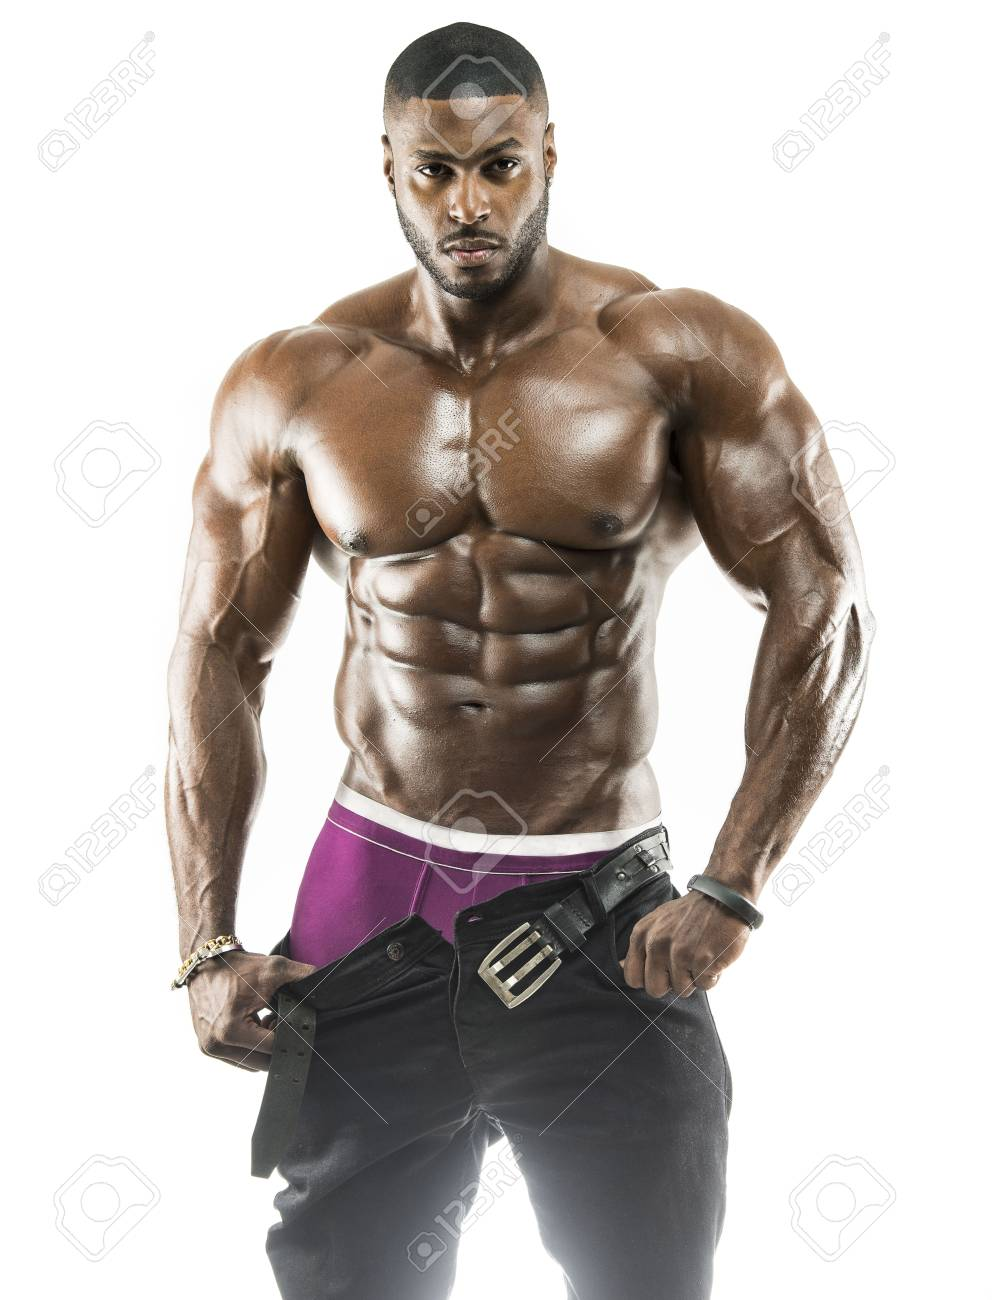 Handsome Muscular Arabic Black Man Removing His Pants Showing Abs And Black Under Wear With Oiled